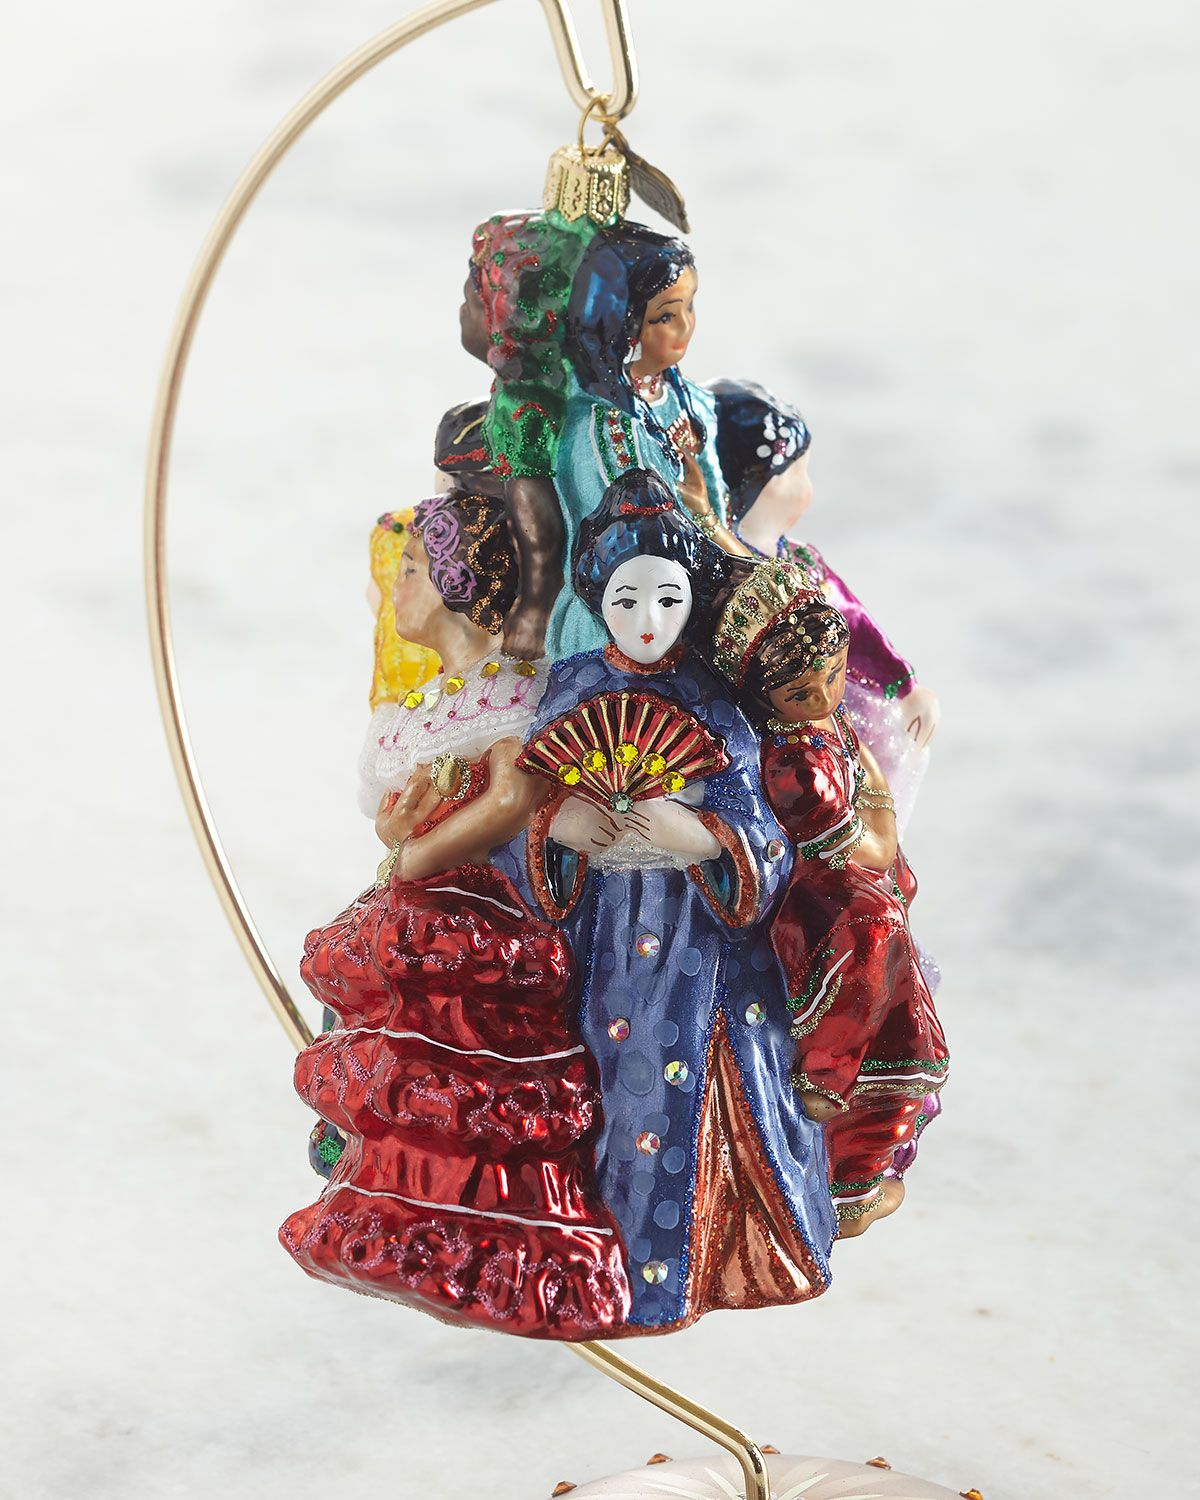 Jay Strongwater Nine Ladies Dancing Glass Ornament in 2020 | Glass